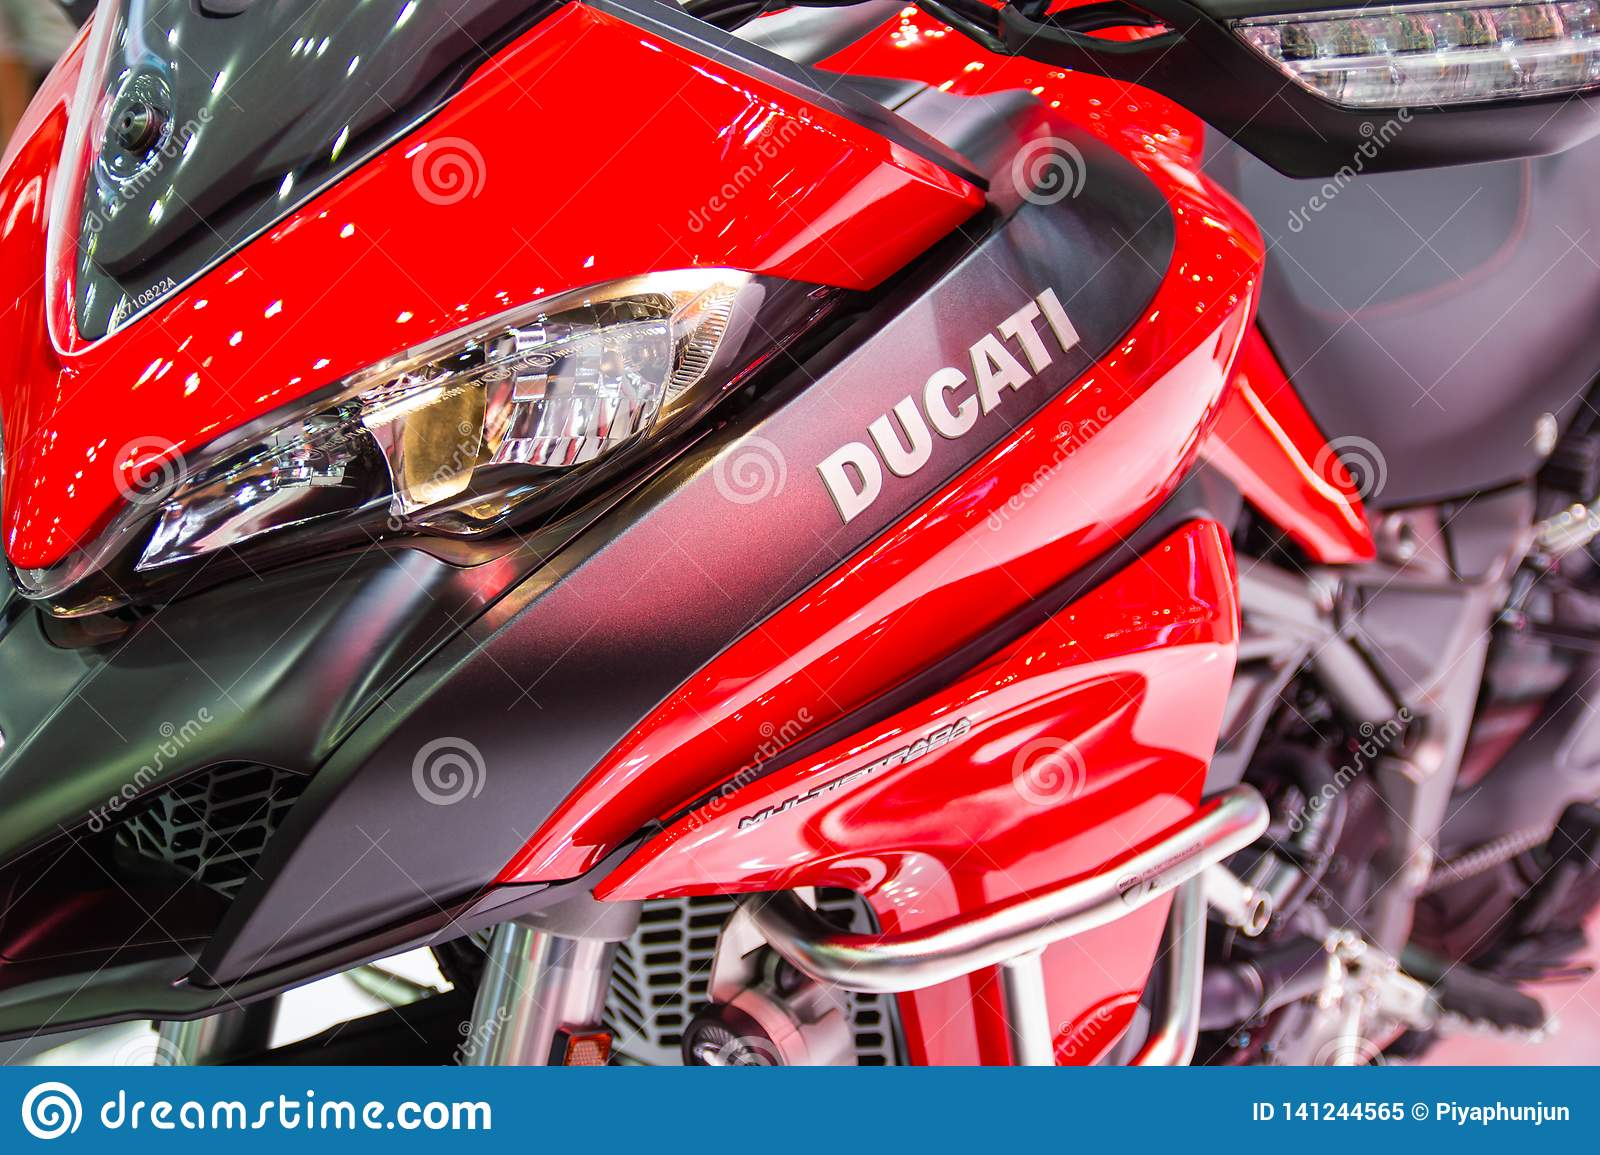 The Front Of Motorcycle Ducati Logo Ducati Red Motorcycle At